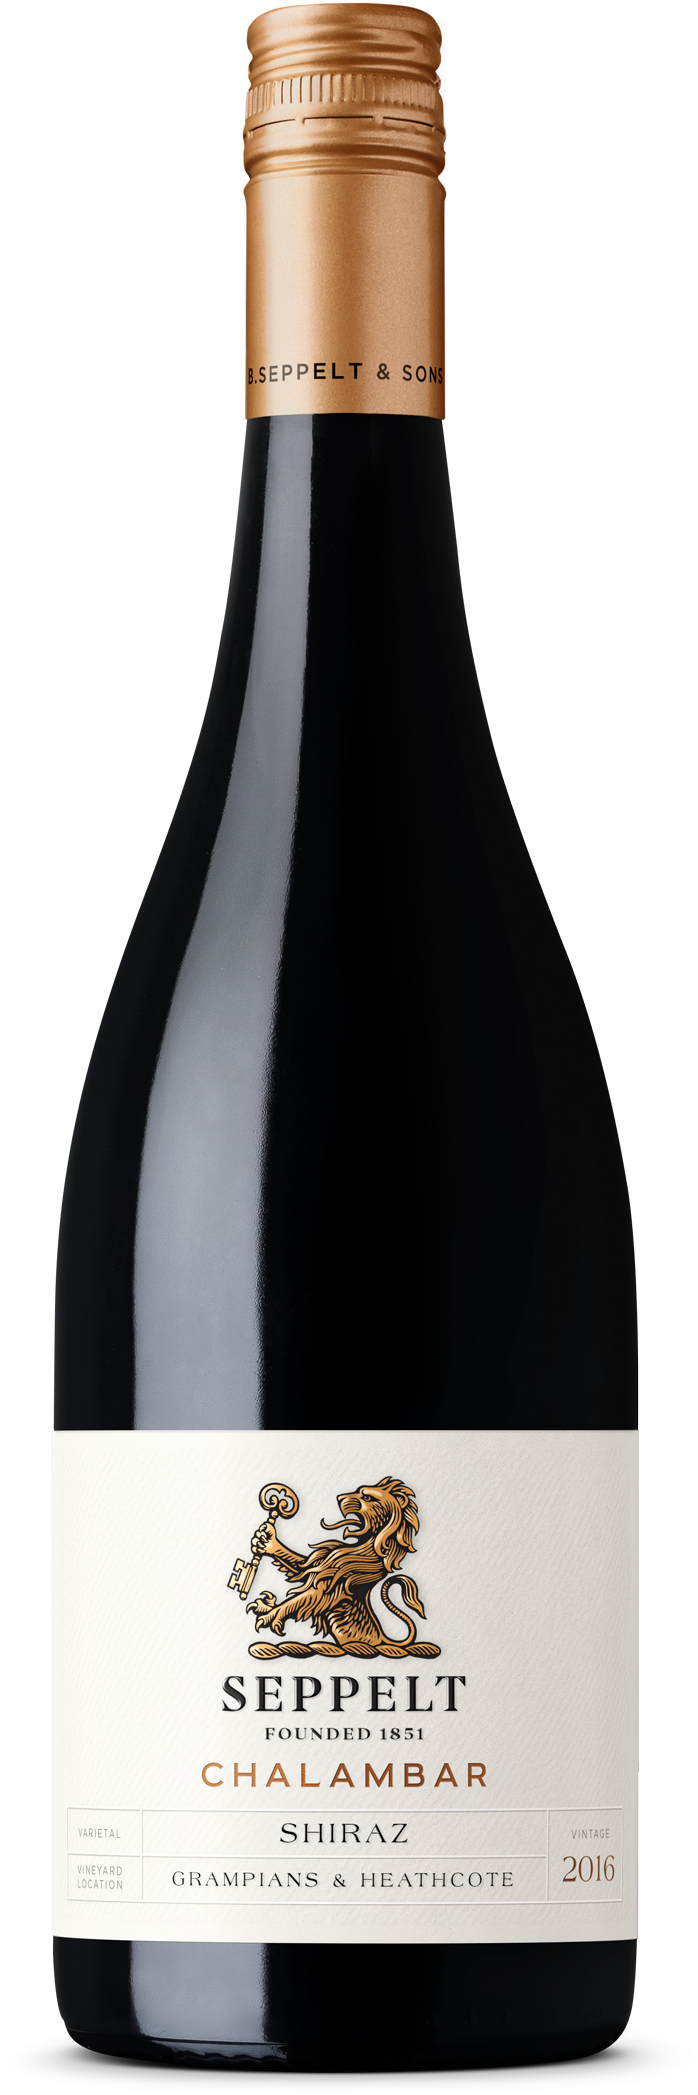 $126.00 per case (6) delivered - SEPPELT FOUNDATION RANGE Chalambar Shiraz 2018